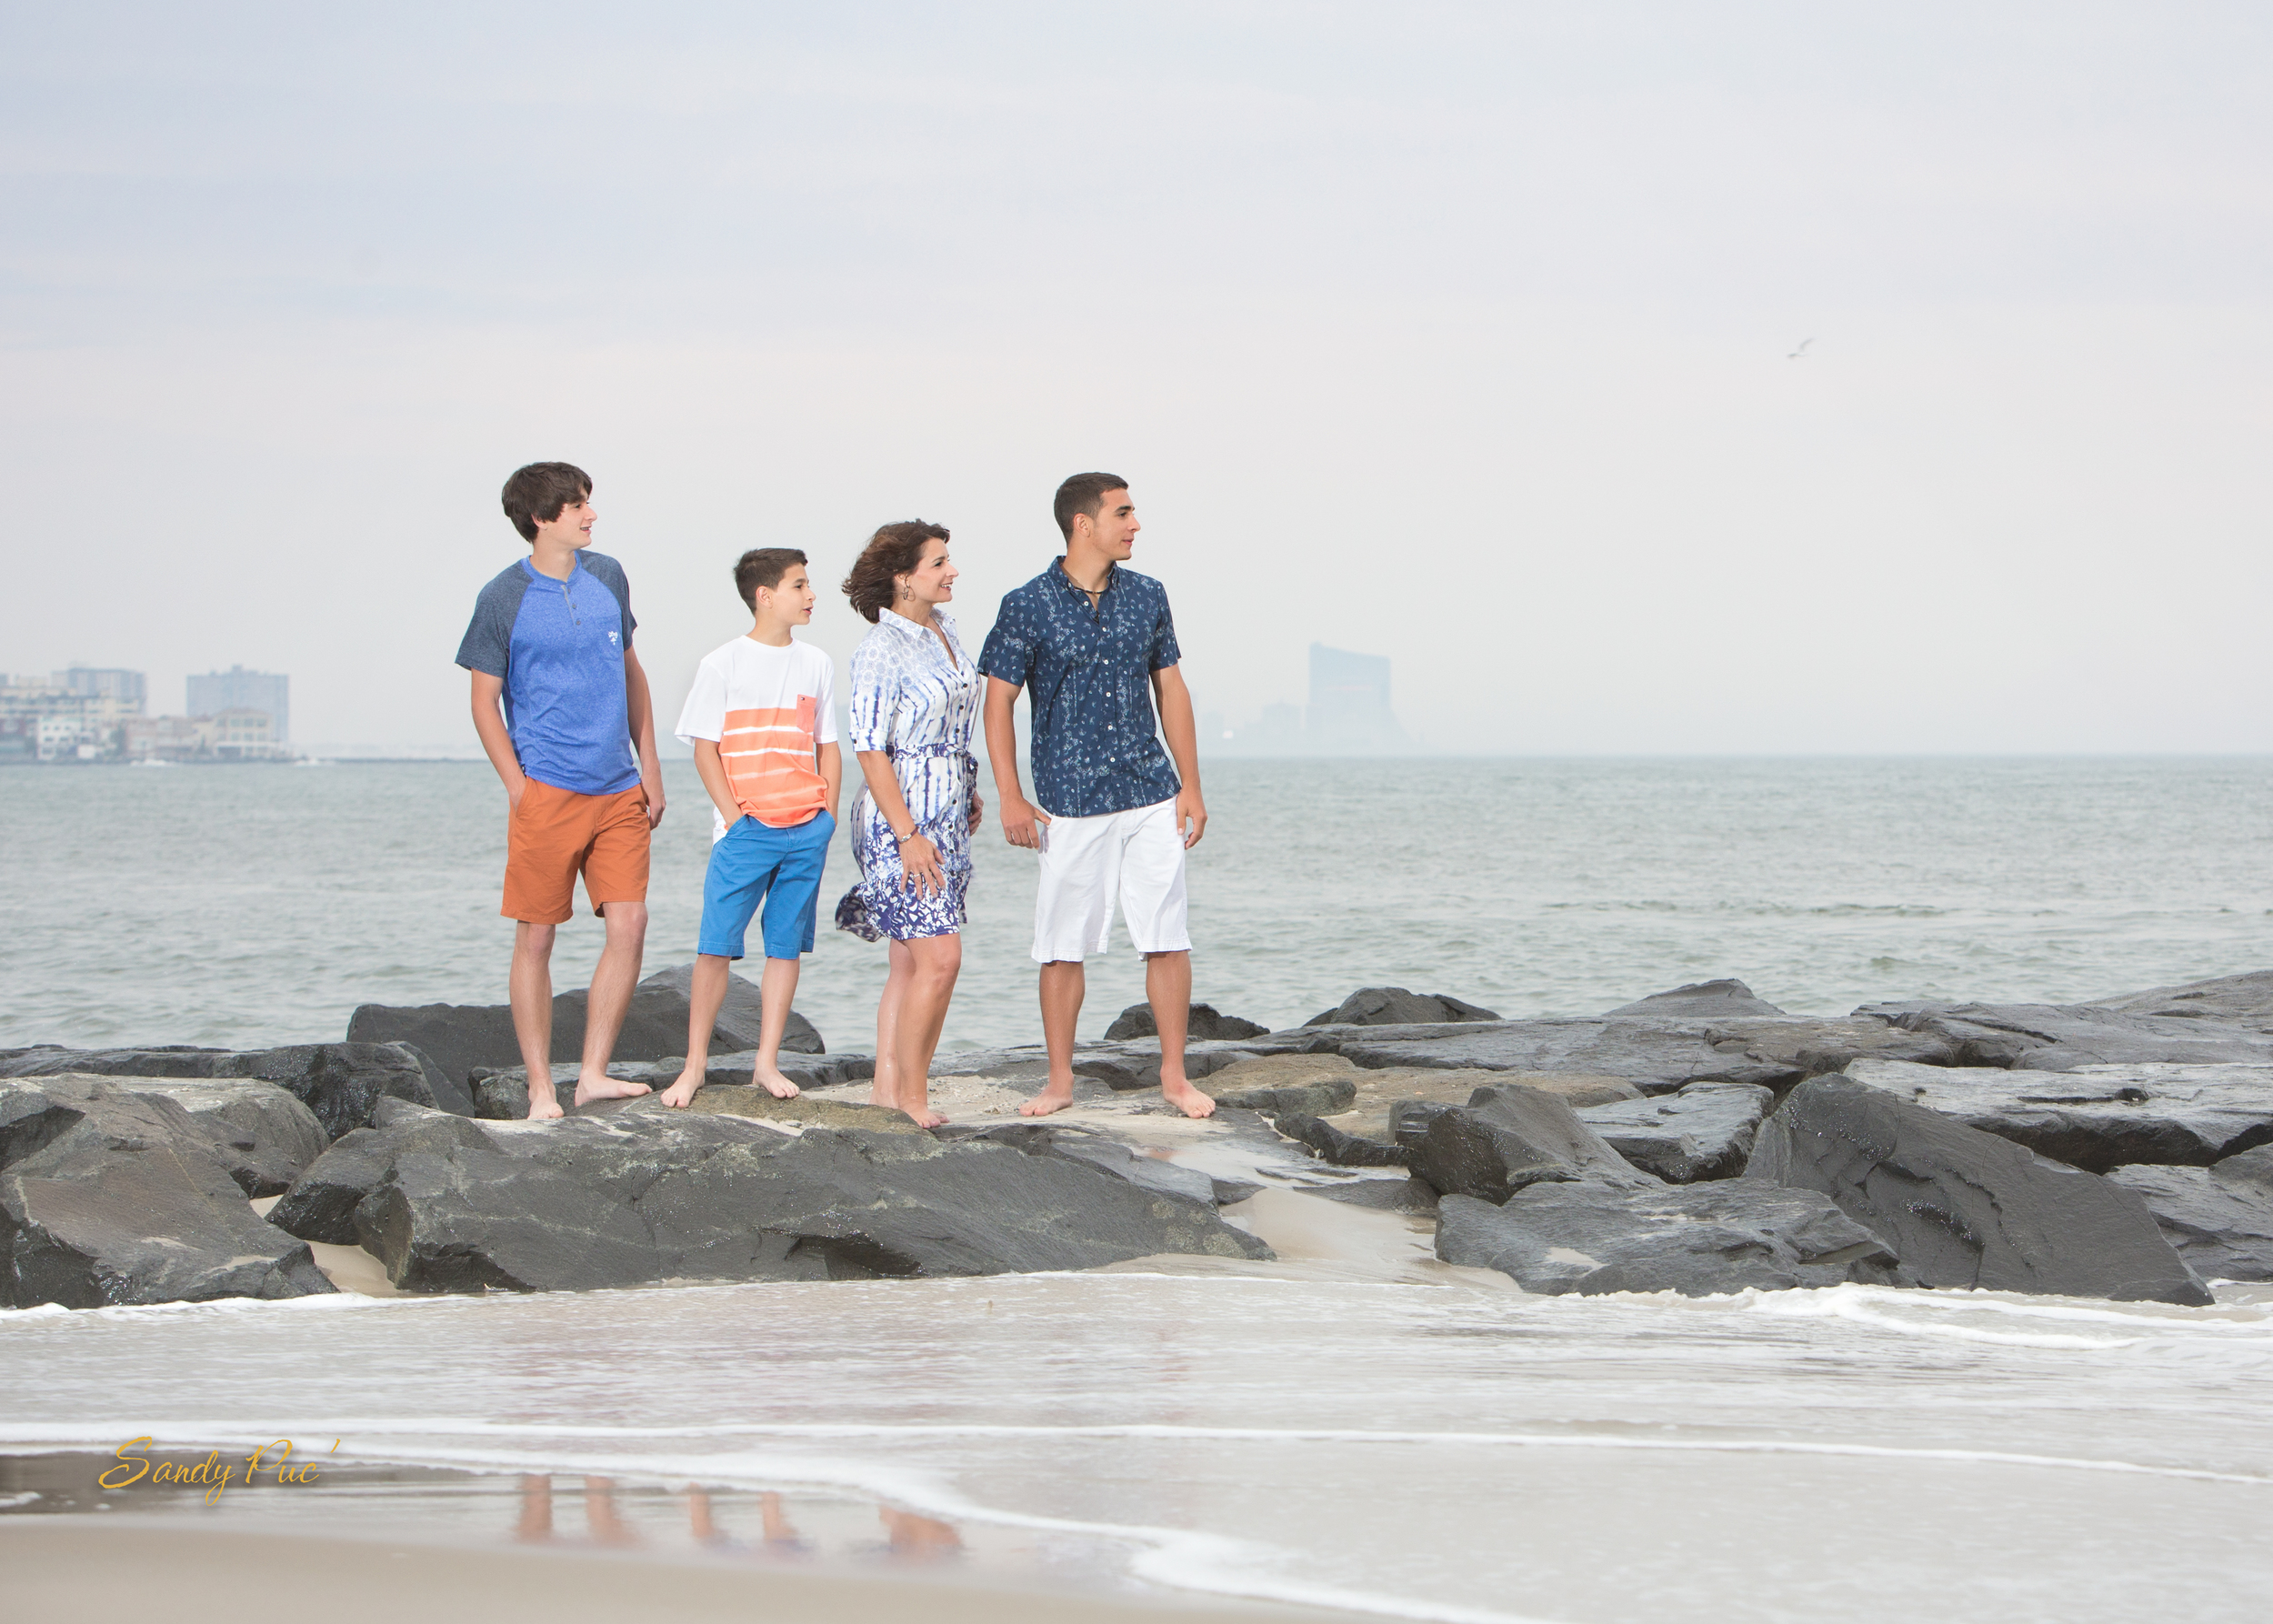 Ocean City, NJ has one of the best beaches to have family pictures taken on.  Here is my own family and this is a great family picture pose, thanks to Sandy Puc'.